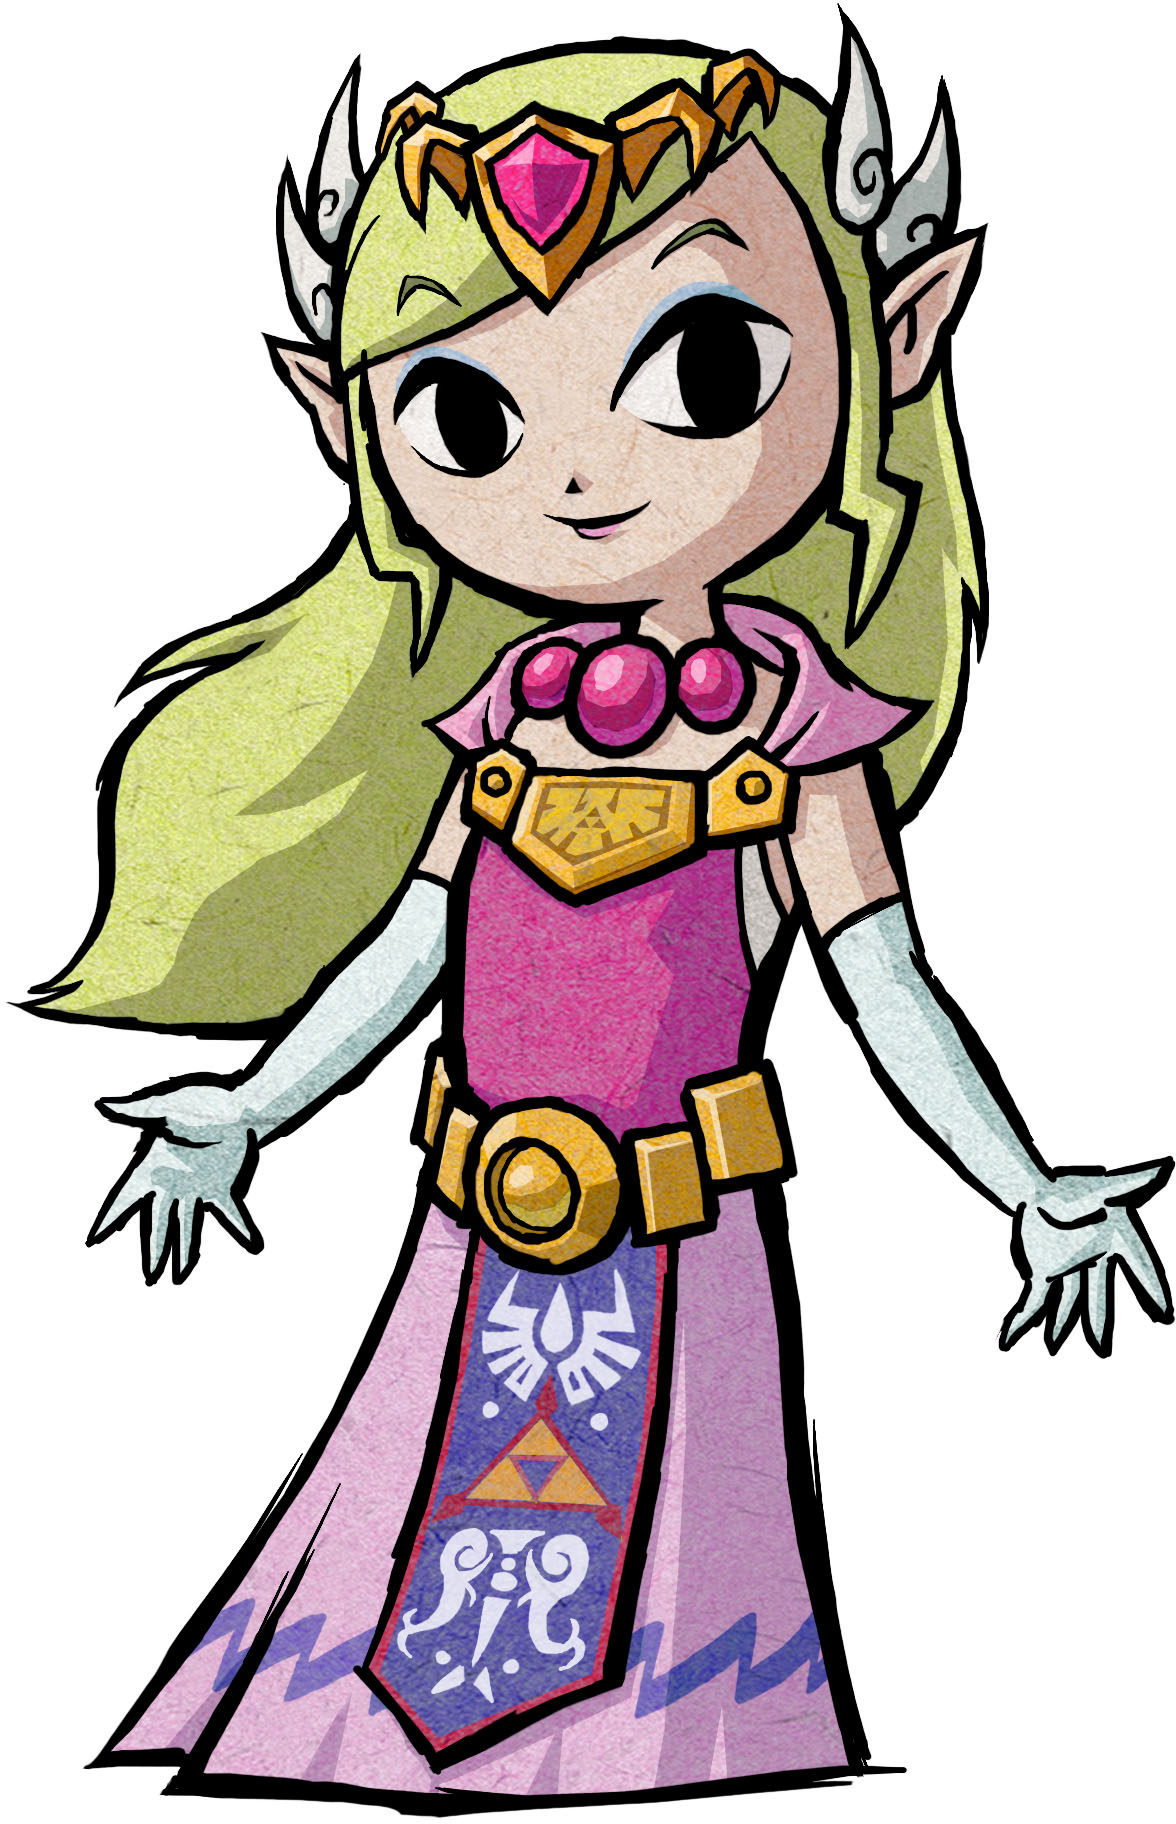 Image zelda the of. Lunchbox clipart legend in your own